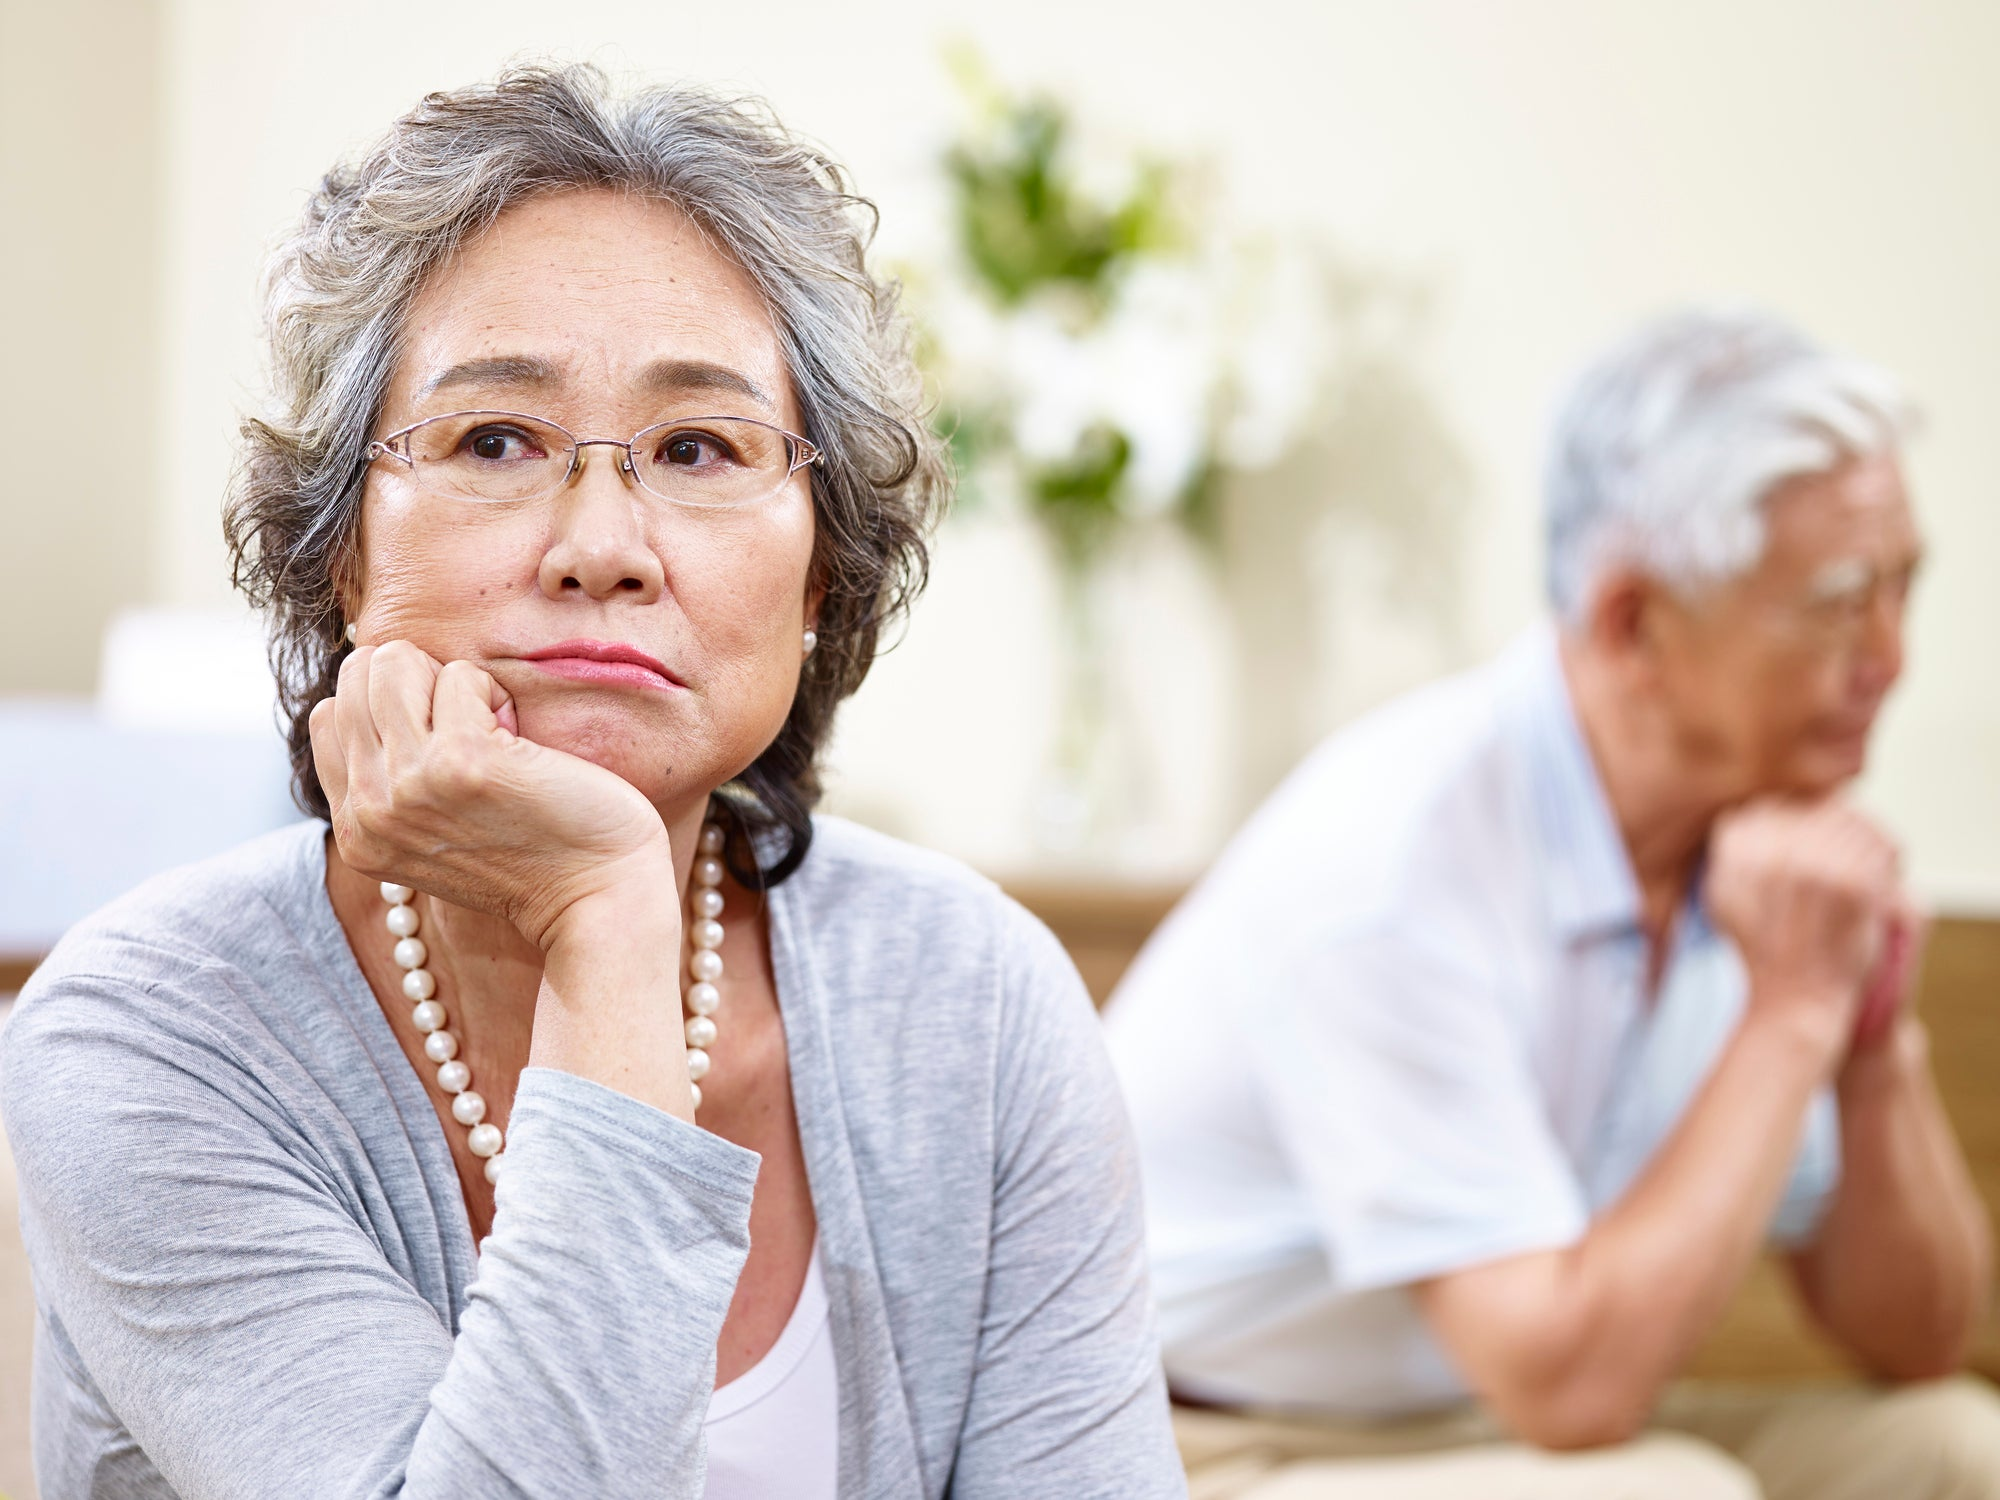 An older couple looking stressed and facing away from each other on a couch.